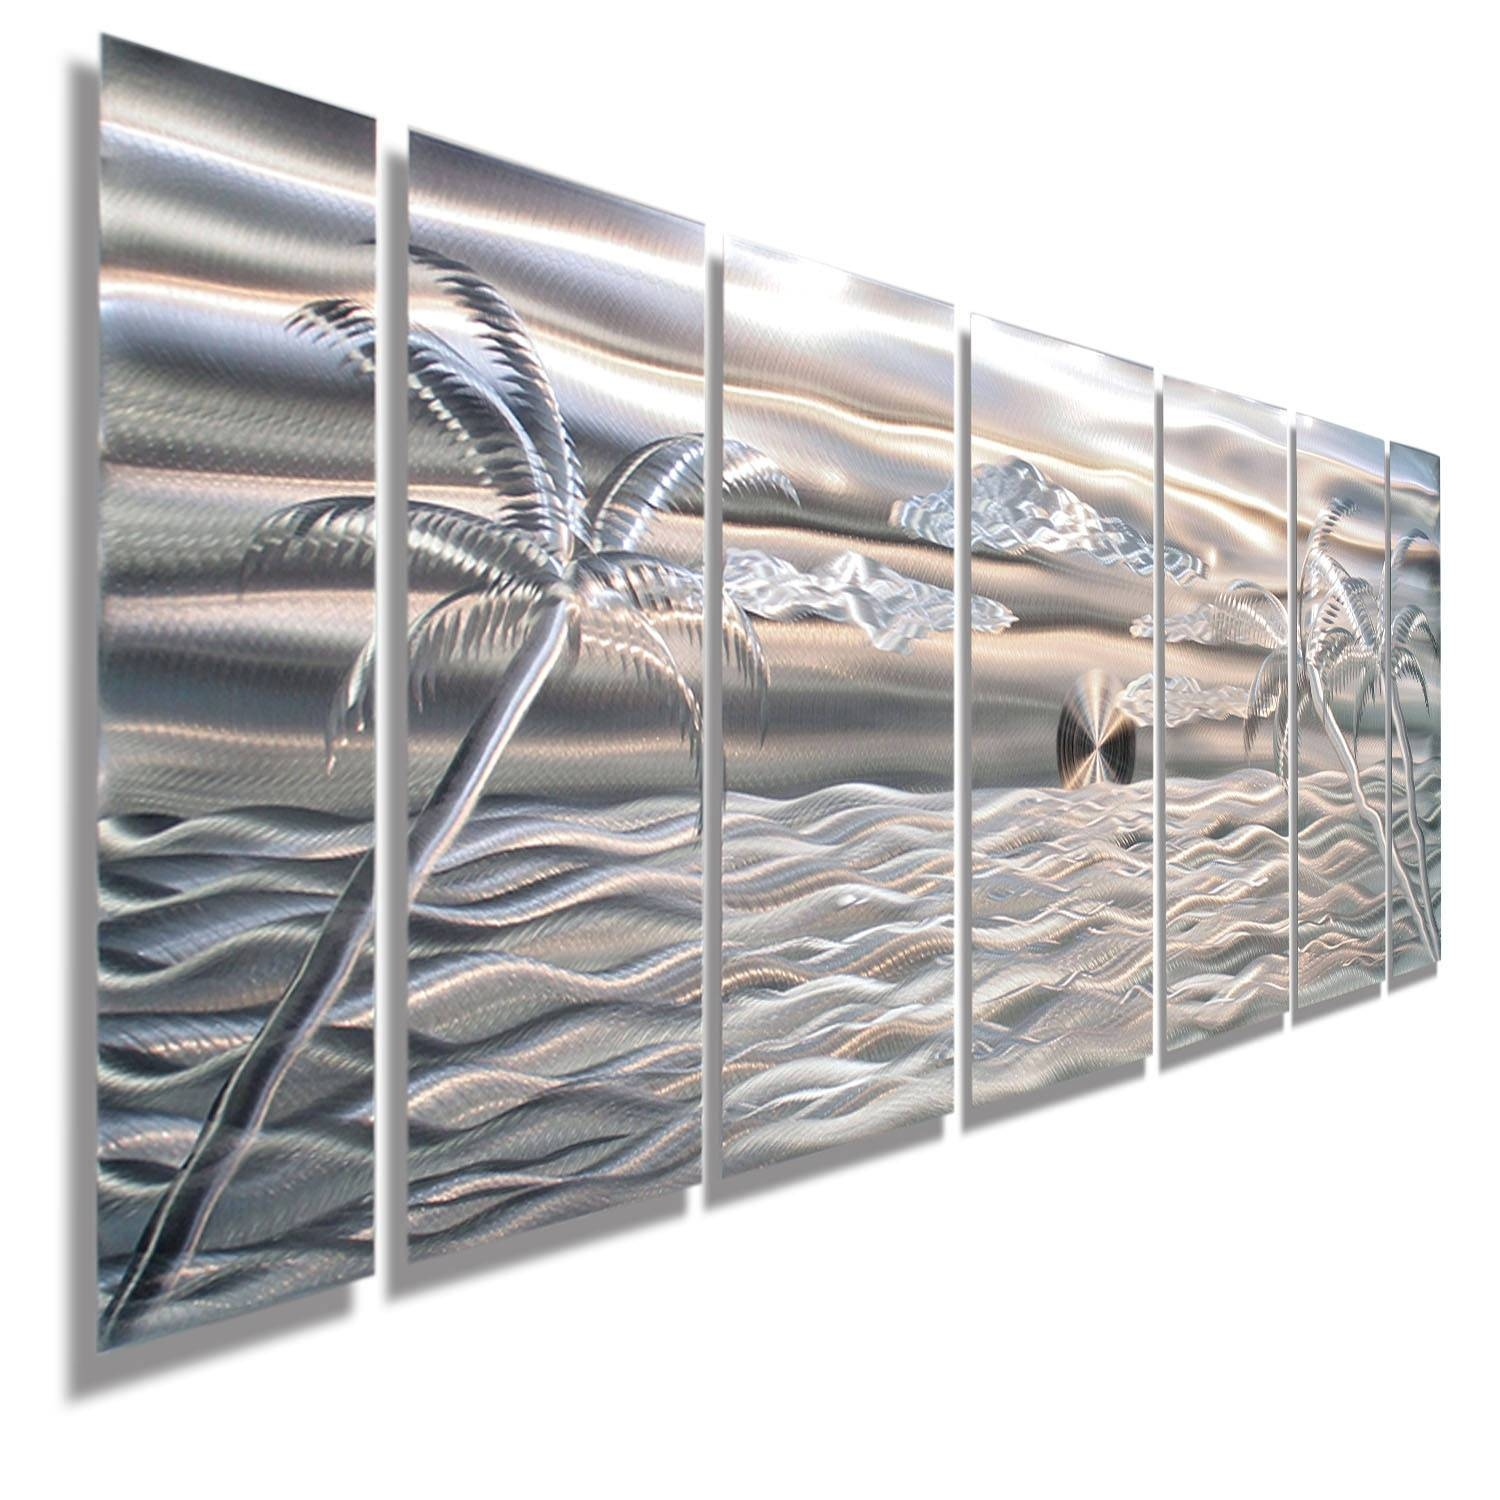 2018 popular beach metal wall art for Tropical metal wall art